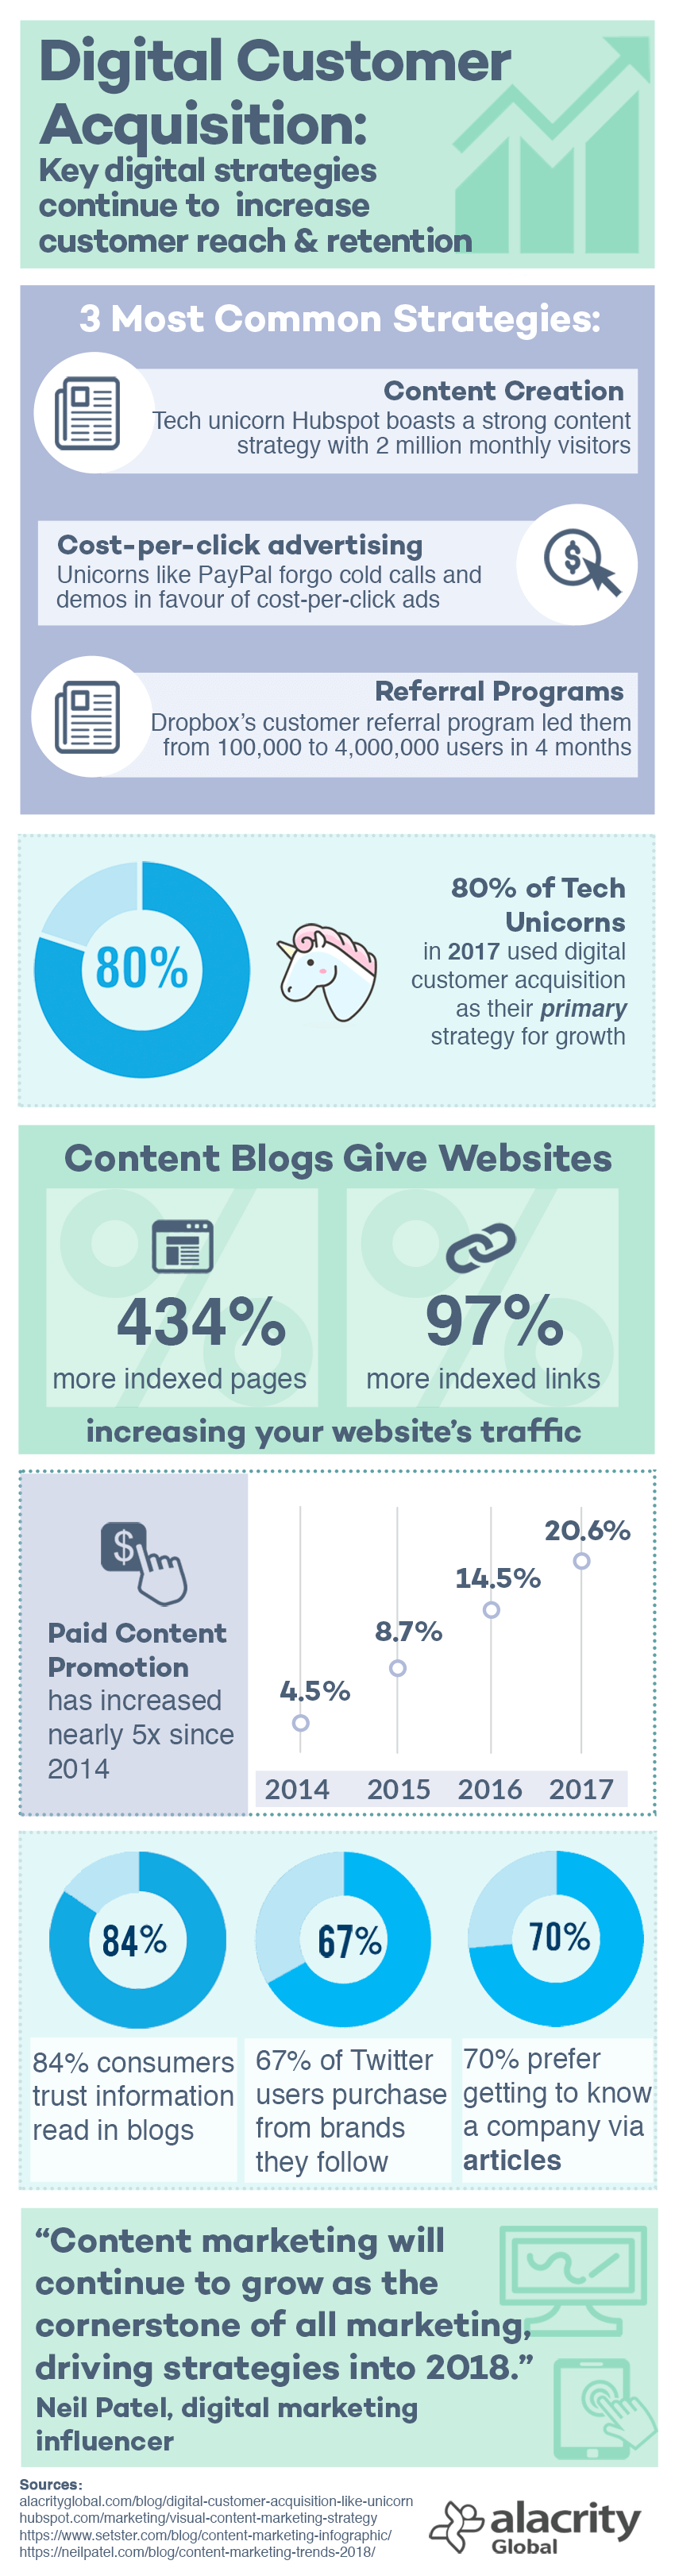 Digital Customer Acquisition - Infographic